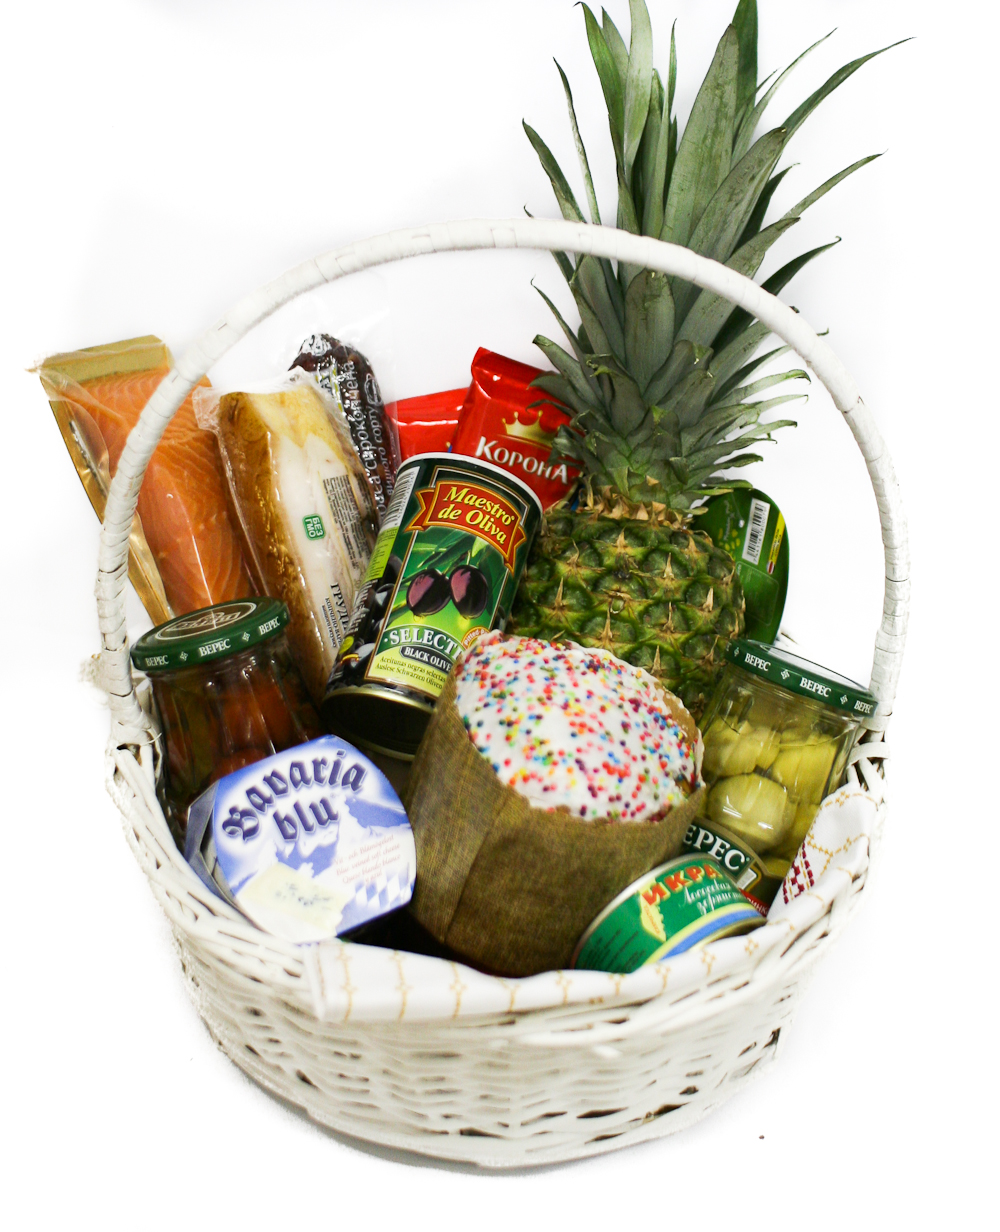 Easter basket ukrflower flower delivery kiev ukraine easter basket ukrflower flower delivery negle Images